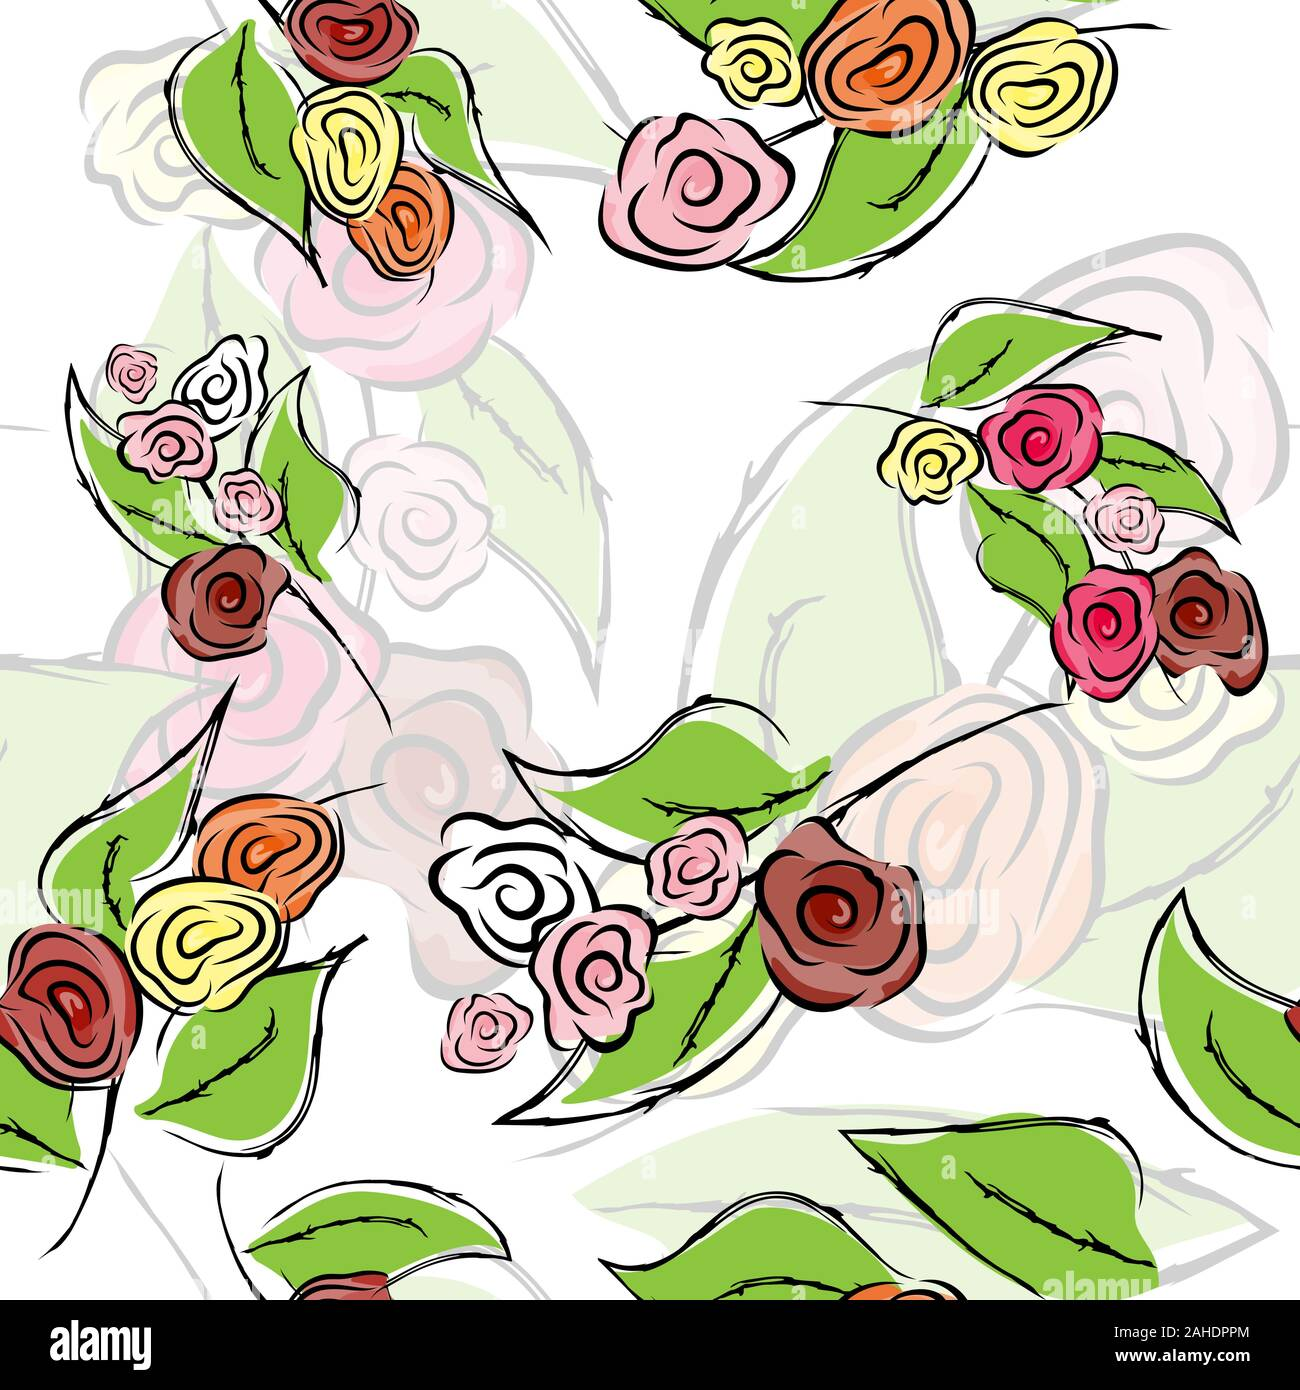 Seamless Flower Rose Pattern Texture Background Vector Seamless